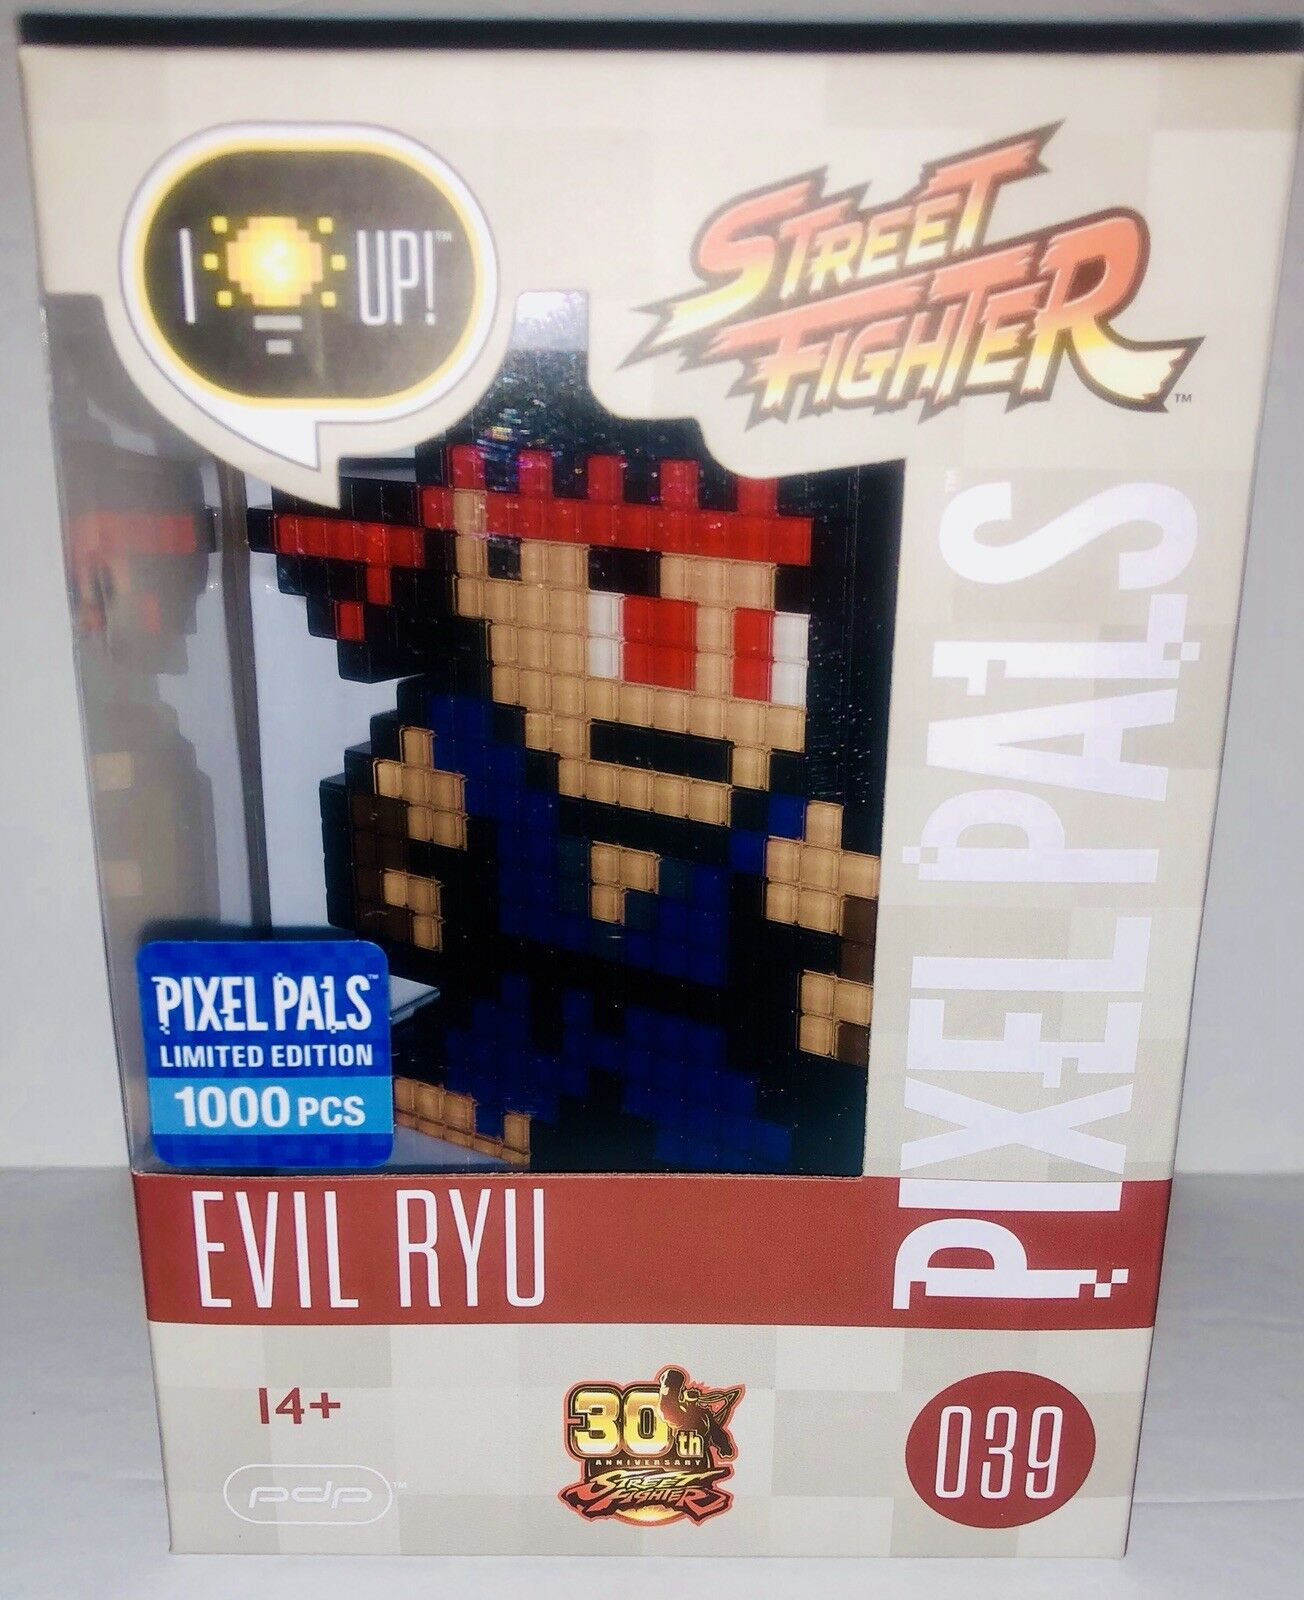 PIXEL PALS EVIL RYU RARE SDCC LIMITED EDITION EXCLUSIVE STREET FIGHTER FIGURE